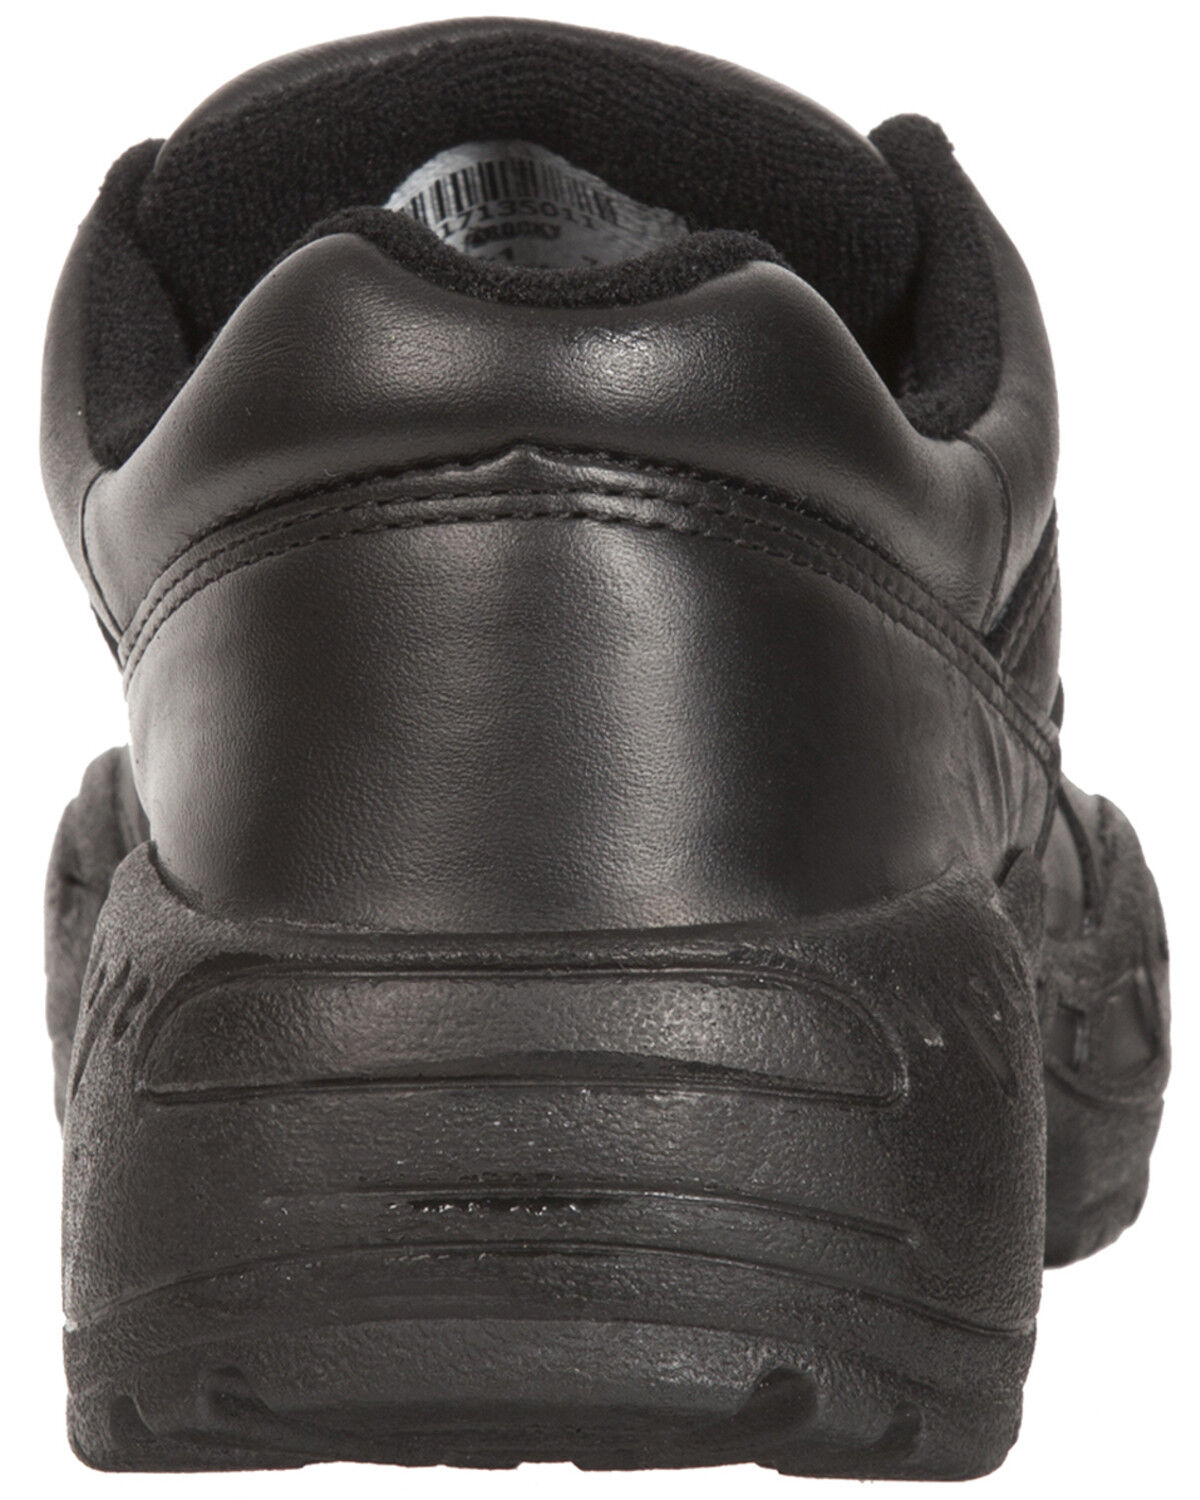 athletic oxford shoes